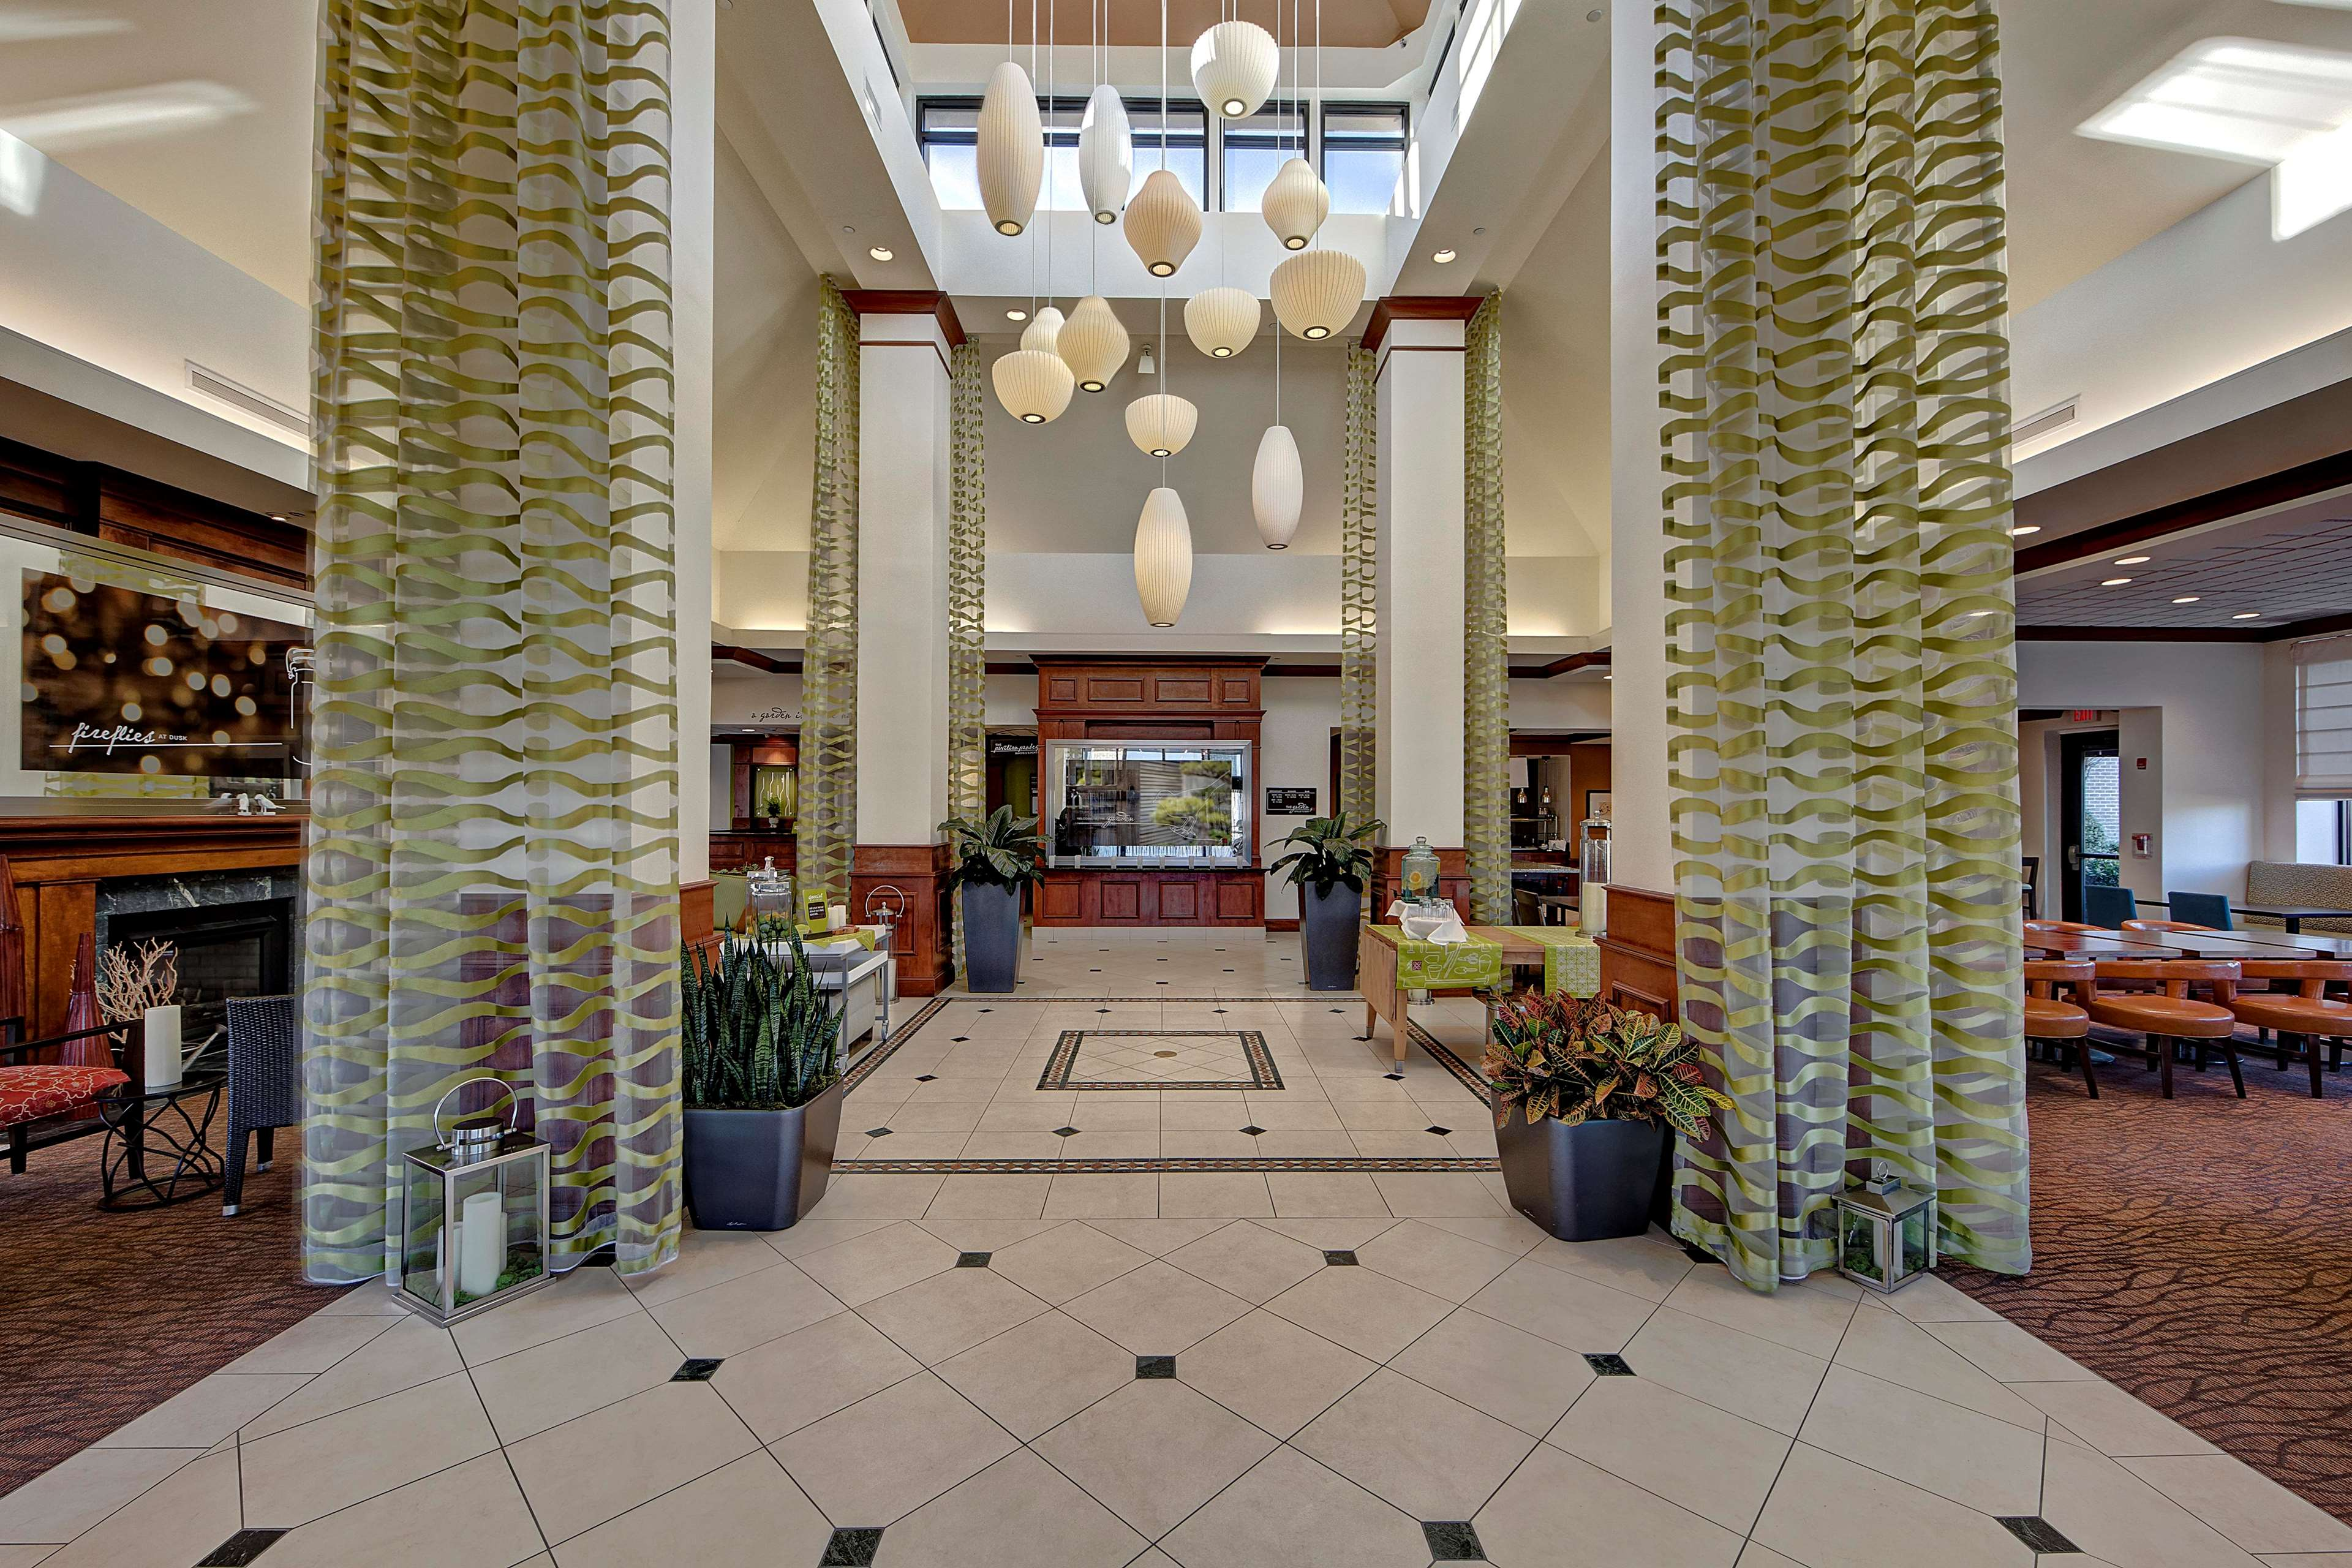 Hilton garden inn memphis southaven ms in southaven ms 38671 for Hilton garden inn southaven ms